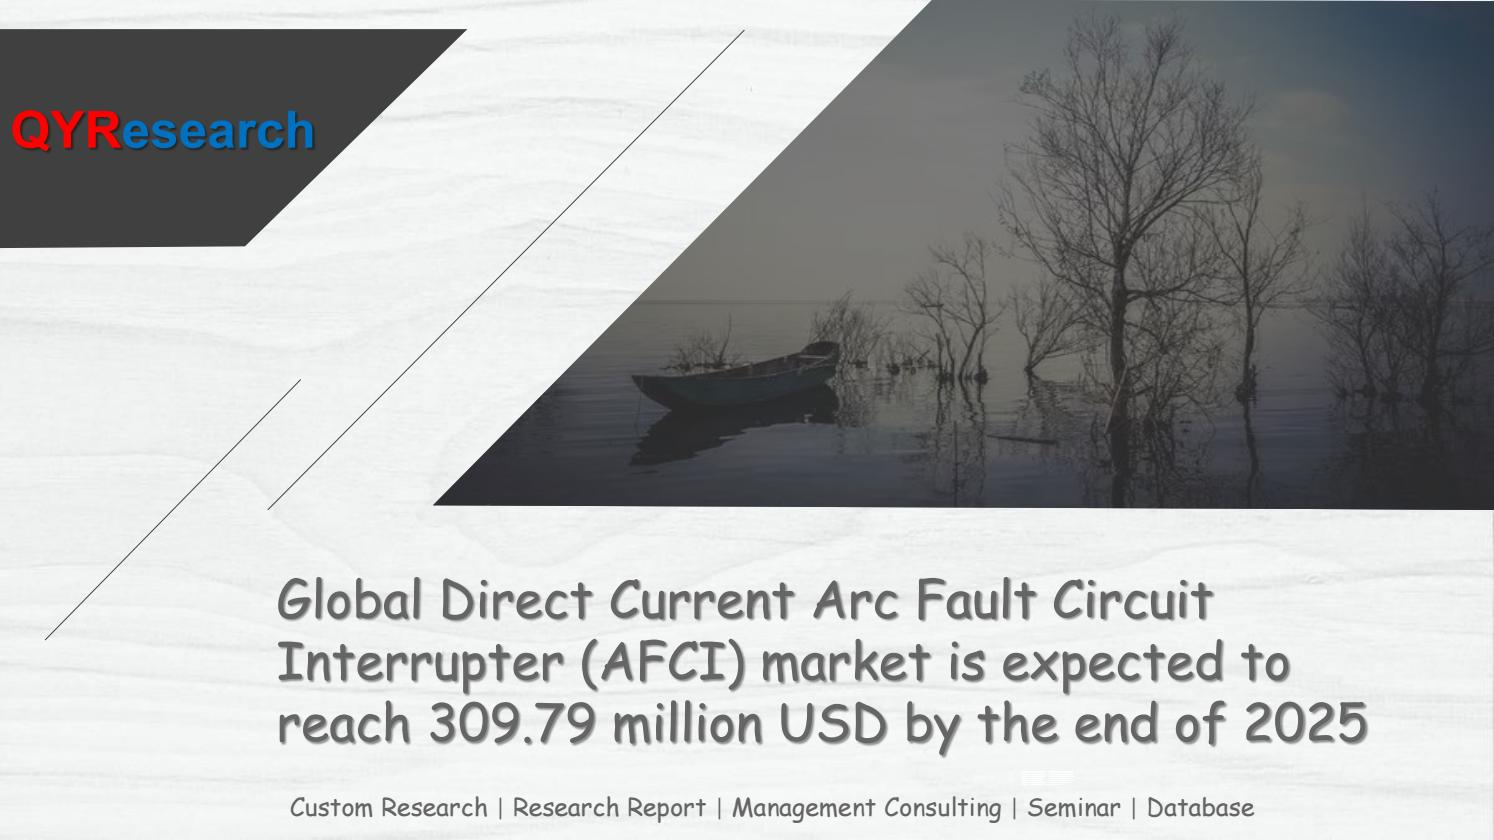 Global Direct Current Arc Fault Circuit Interrupter Afci Market Is Fact Sheet The An Expected To Reach 30979 Millio By Qyresearch Issuu